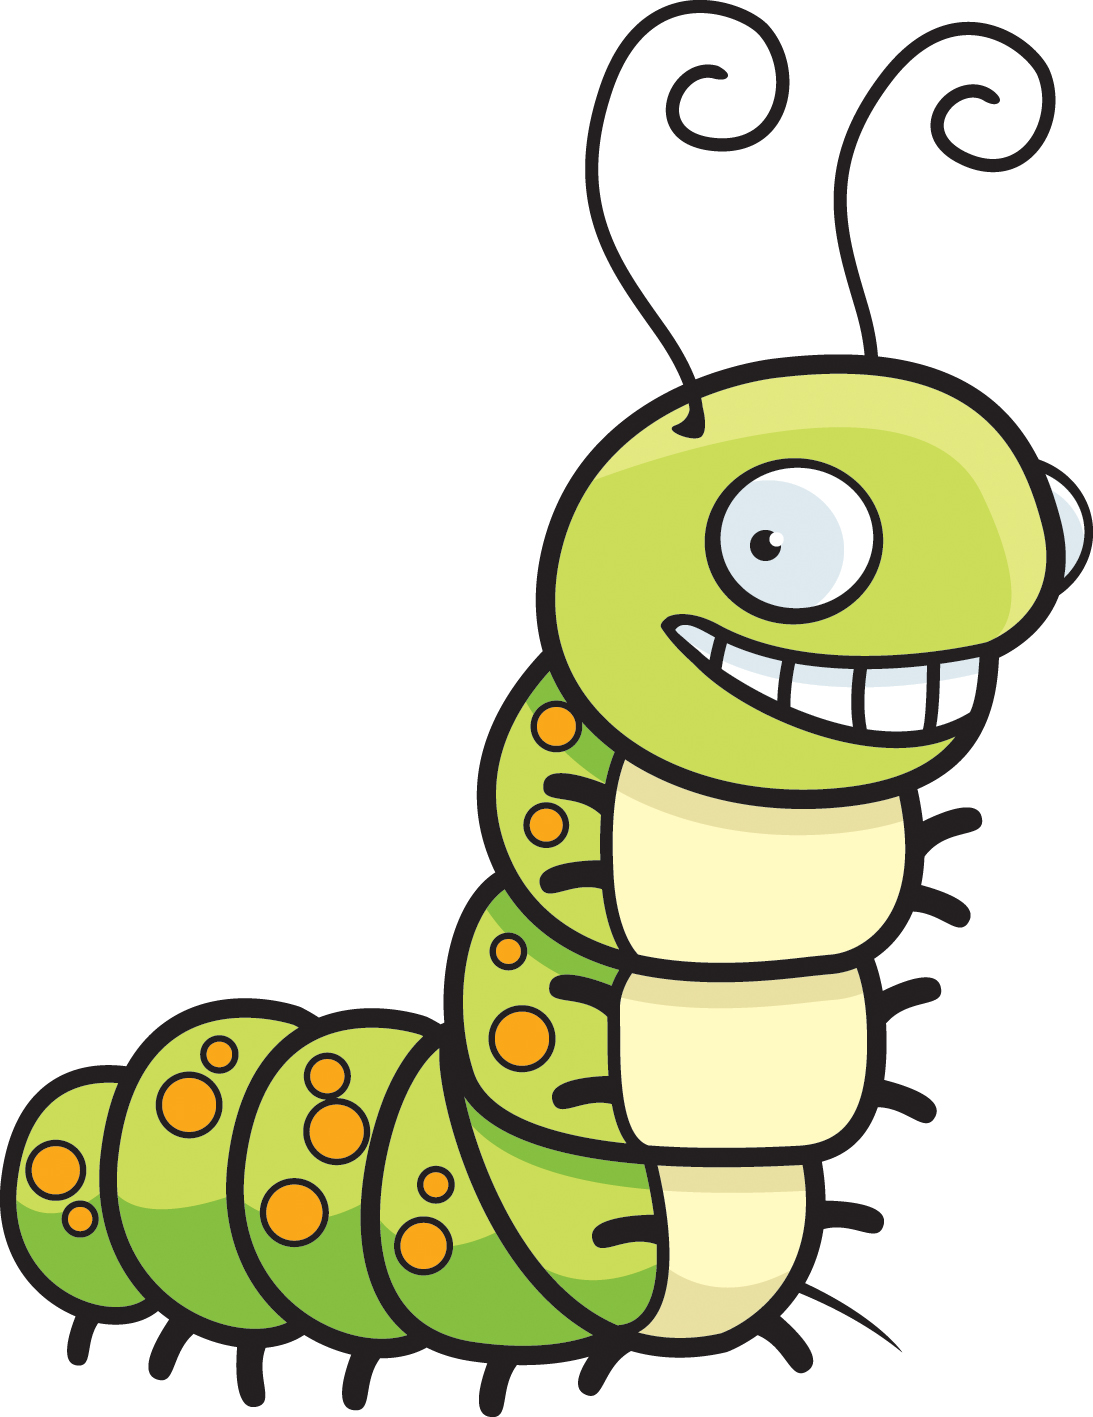 Catepillar clipart clipart graphic download Caterpillar Clip Art & Caterpillar Clip Art Clip Art Images ... graphic download